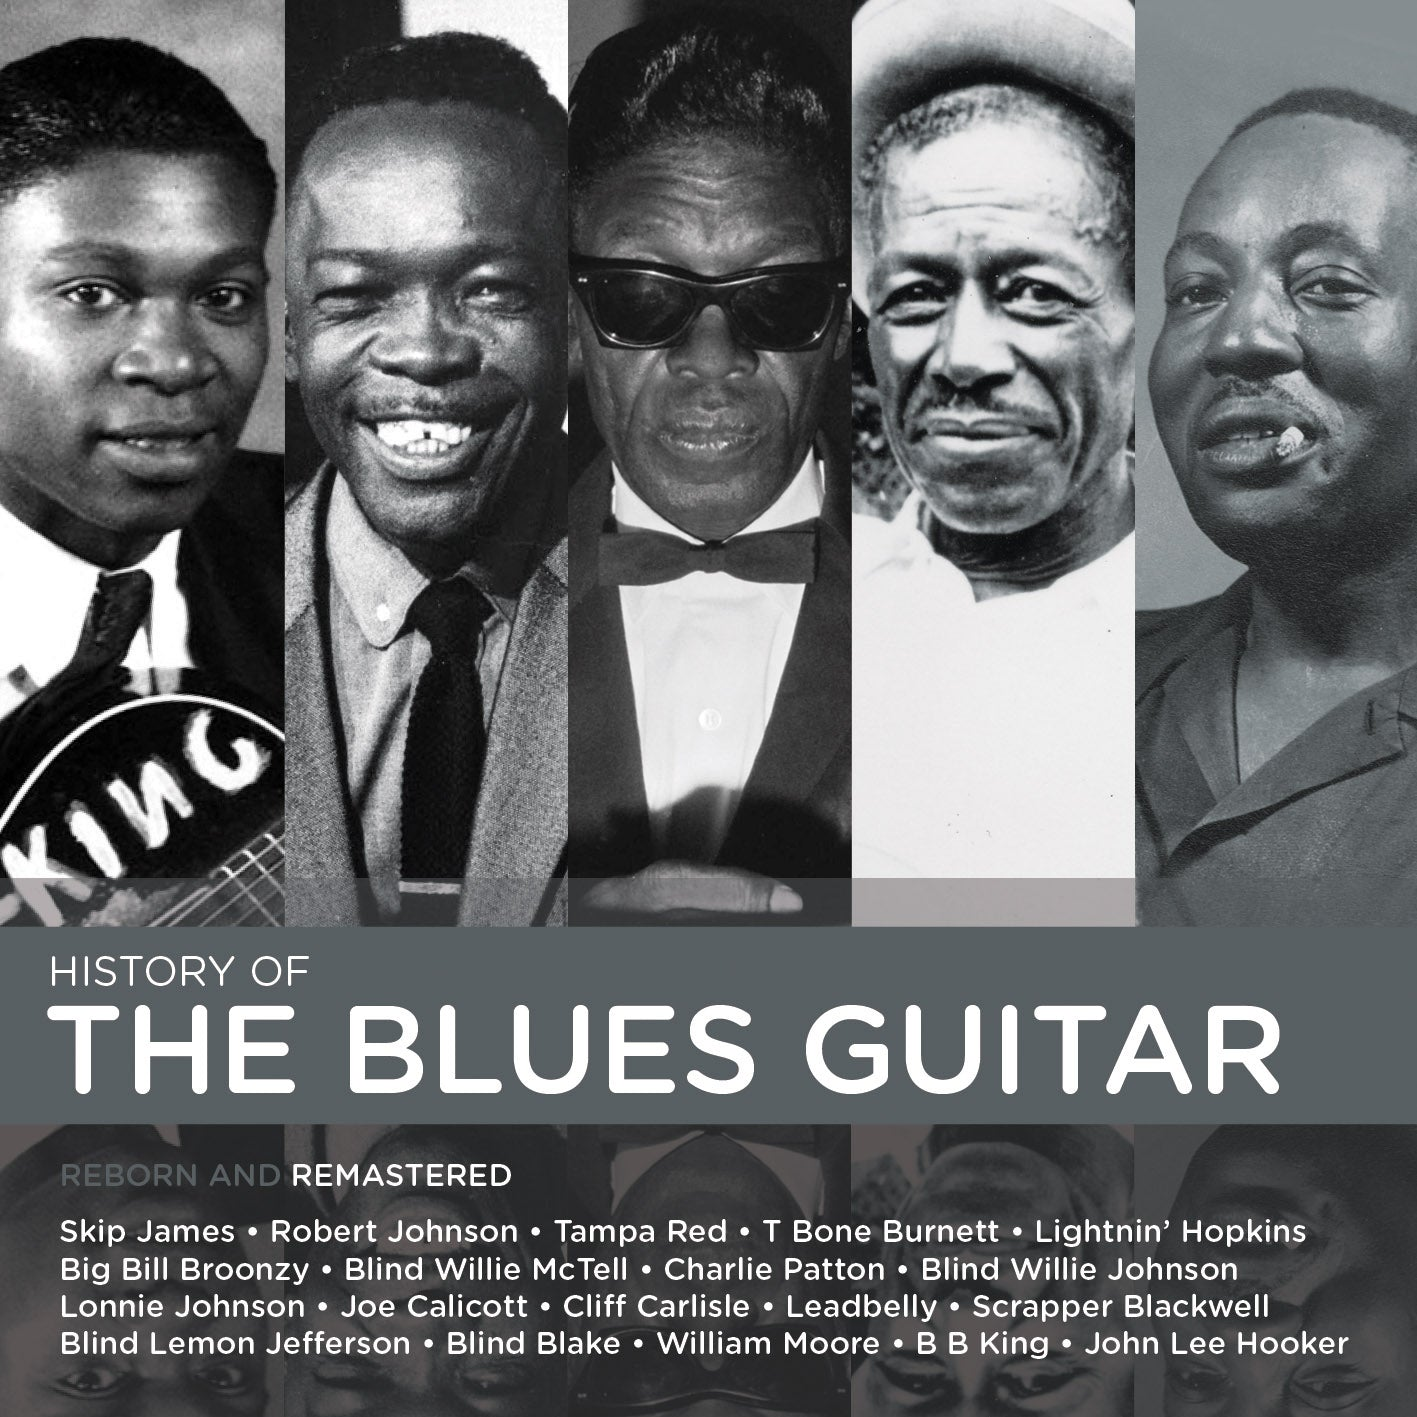 FANFARE273 - HISTORY OF THE BLUES GUITAR